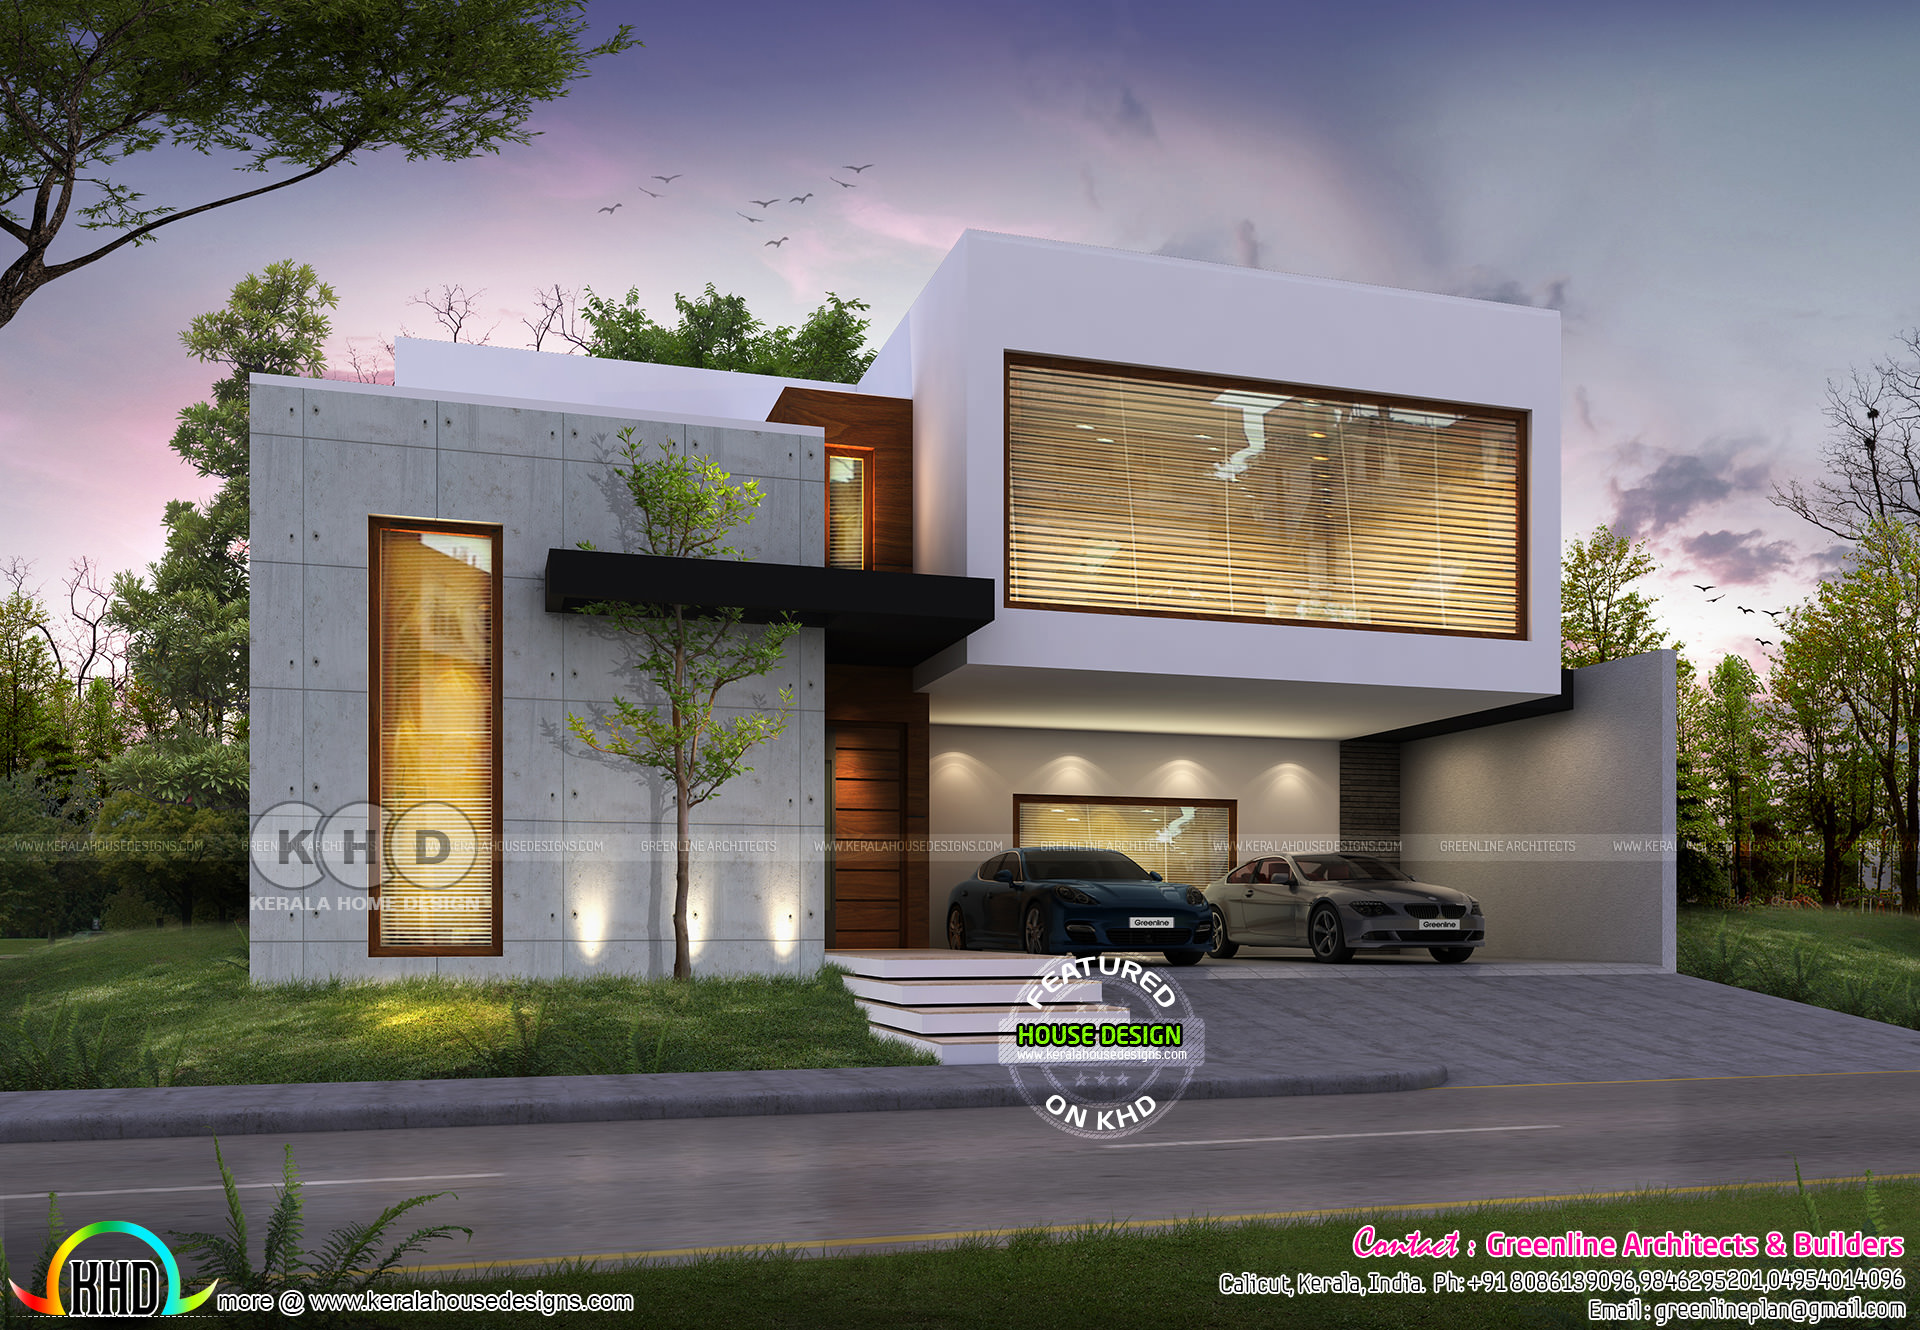 4 BHK beautiful contemporary modern home plan | Kerala home design Contemporary House Plans Sq Ft on 200 sq ft house plans, 720 sq ft house plans, 4000 sq ft house plans, 4800 sq ft house plans, 1150 sq ft house plans, 300 sq ft house plans, 400 sq ft house plans, 600 sq ft house plans, 1300 sq ft house plans, 1035 sq ft house plans, 3100 sq ft house plans, 900 sq ft house plans, 1800 sq ft house plans, 1148 sq ft house plans, 10000 sq ft house plans, 1200 sq ft house plans, 500 sq ft house plans, 30000 sq ft house plans, 832 sq ft house plans, 1000 sq ft house plans,